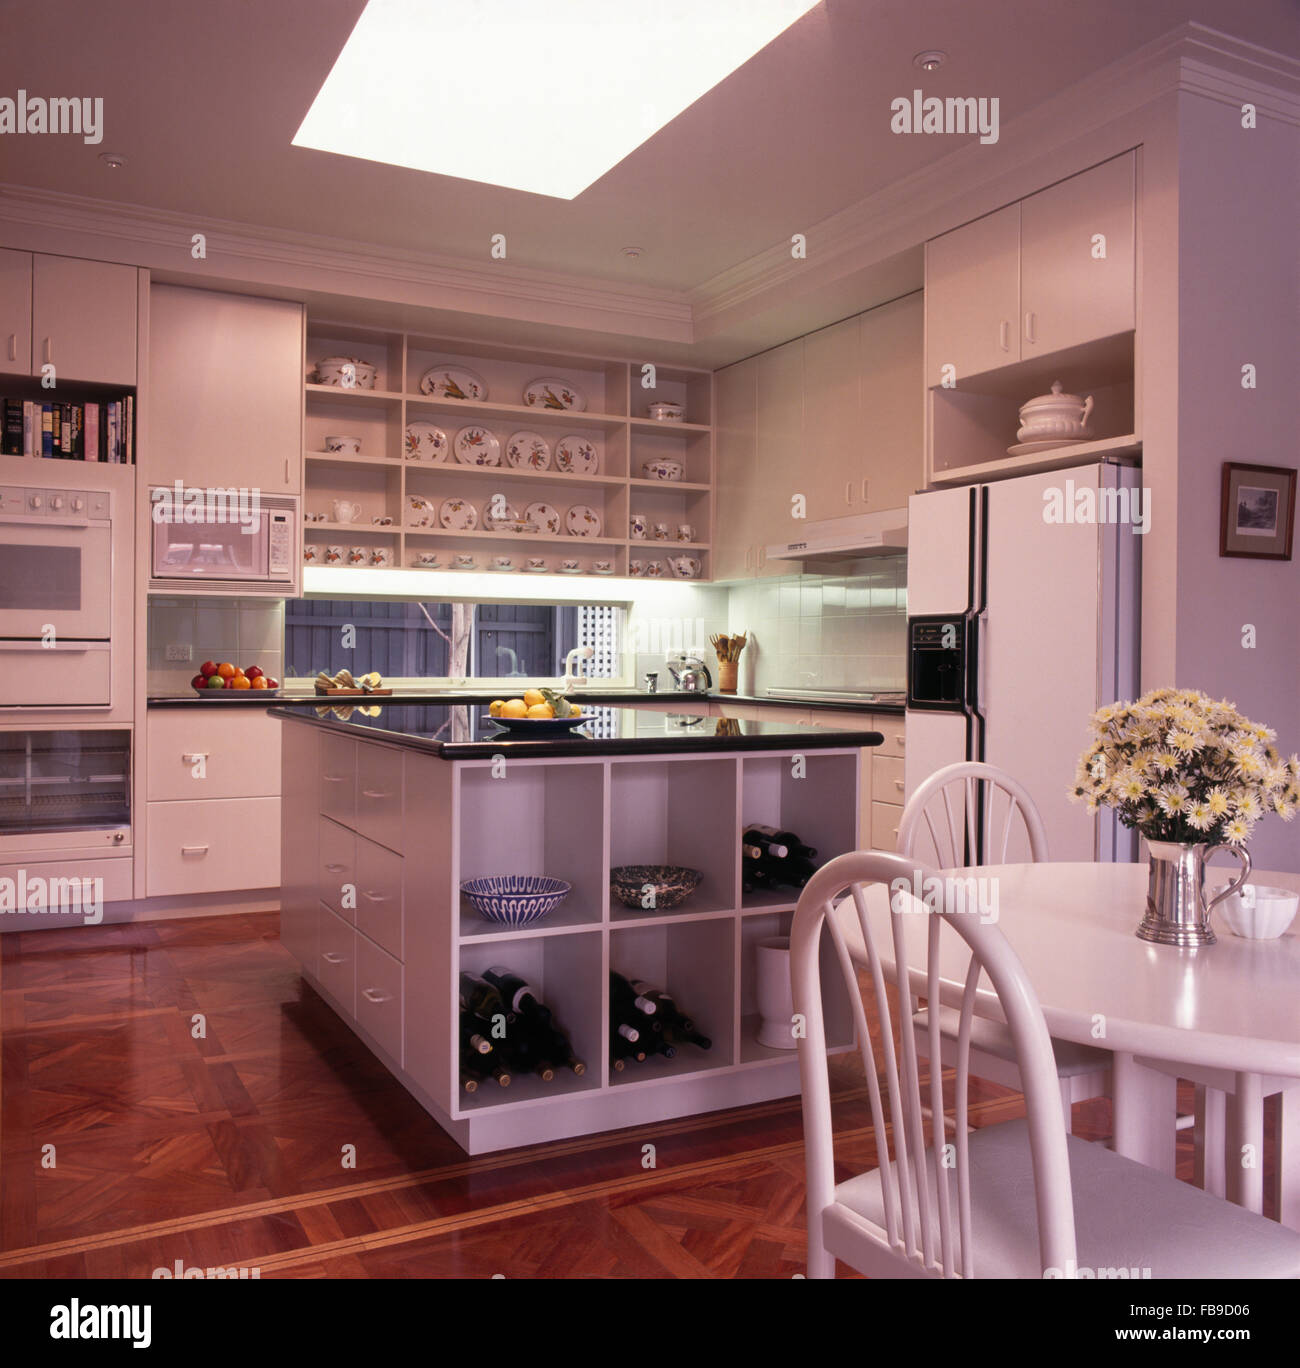 white dining table and chairs and an american style fridge freezer FB9D06